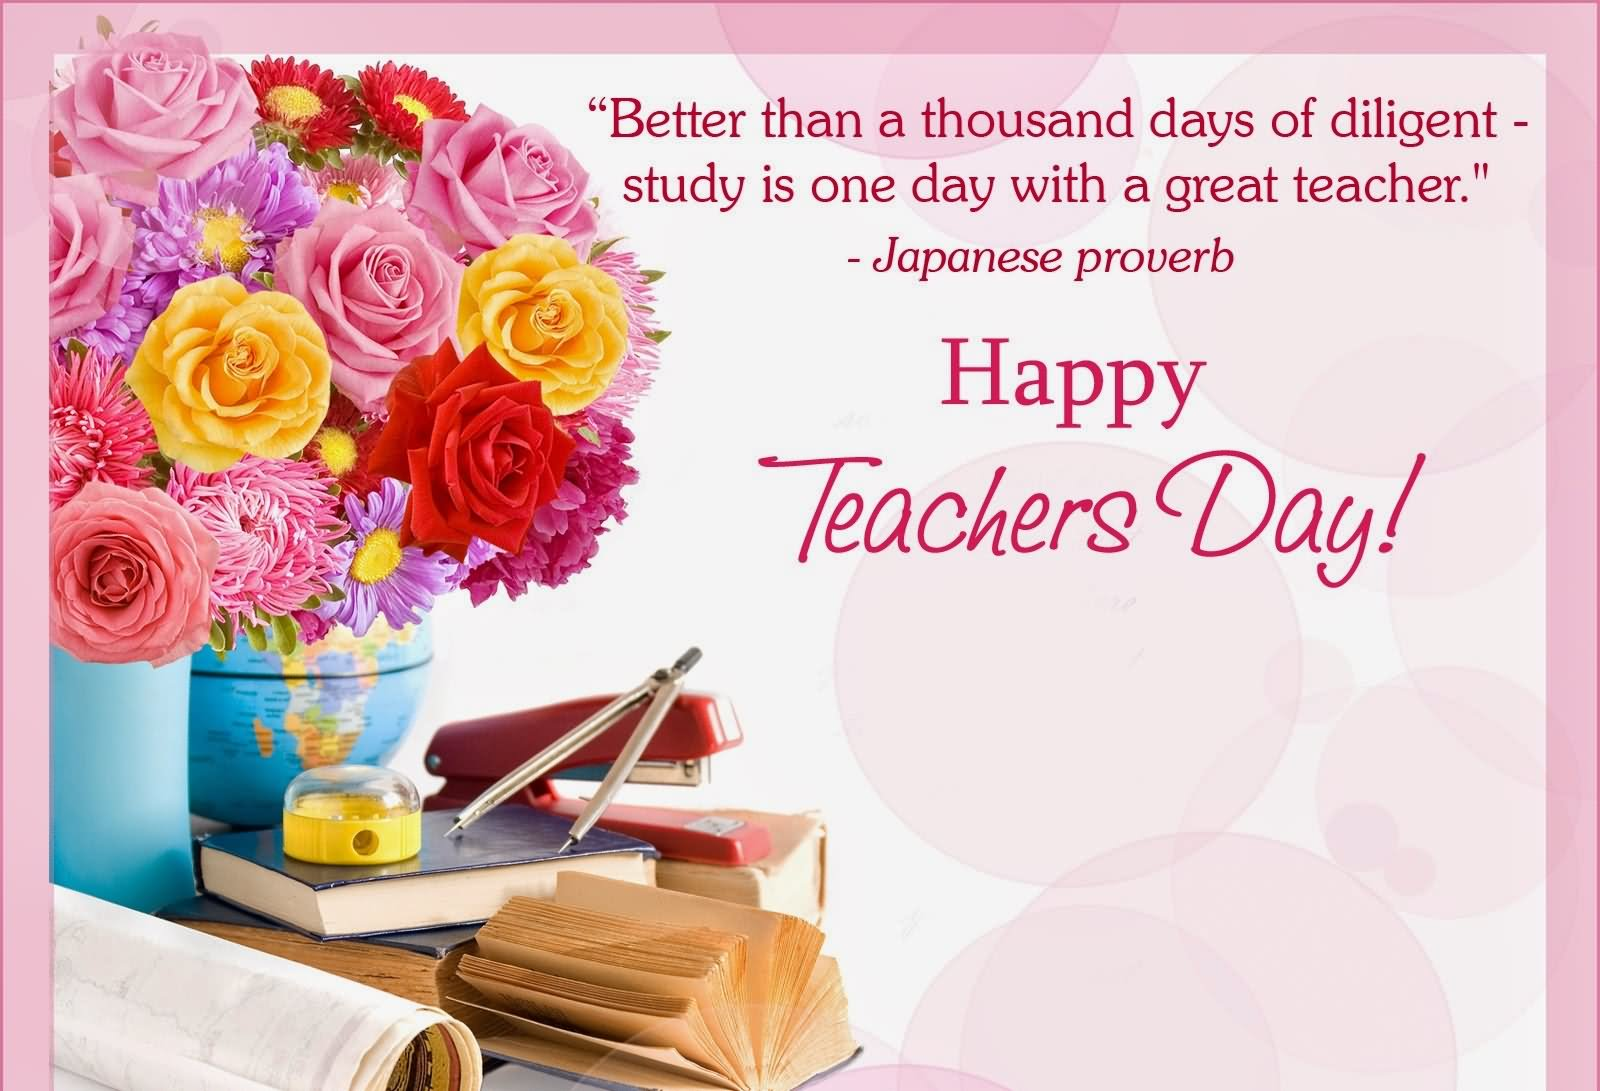 Happy Teacher's Day 2019: Date, Celebration, Speech, Information & Quotes